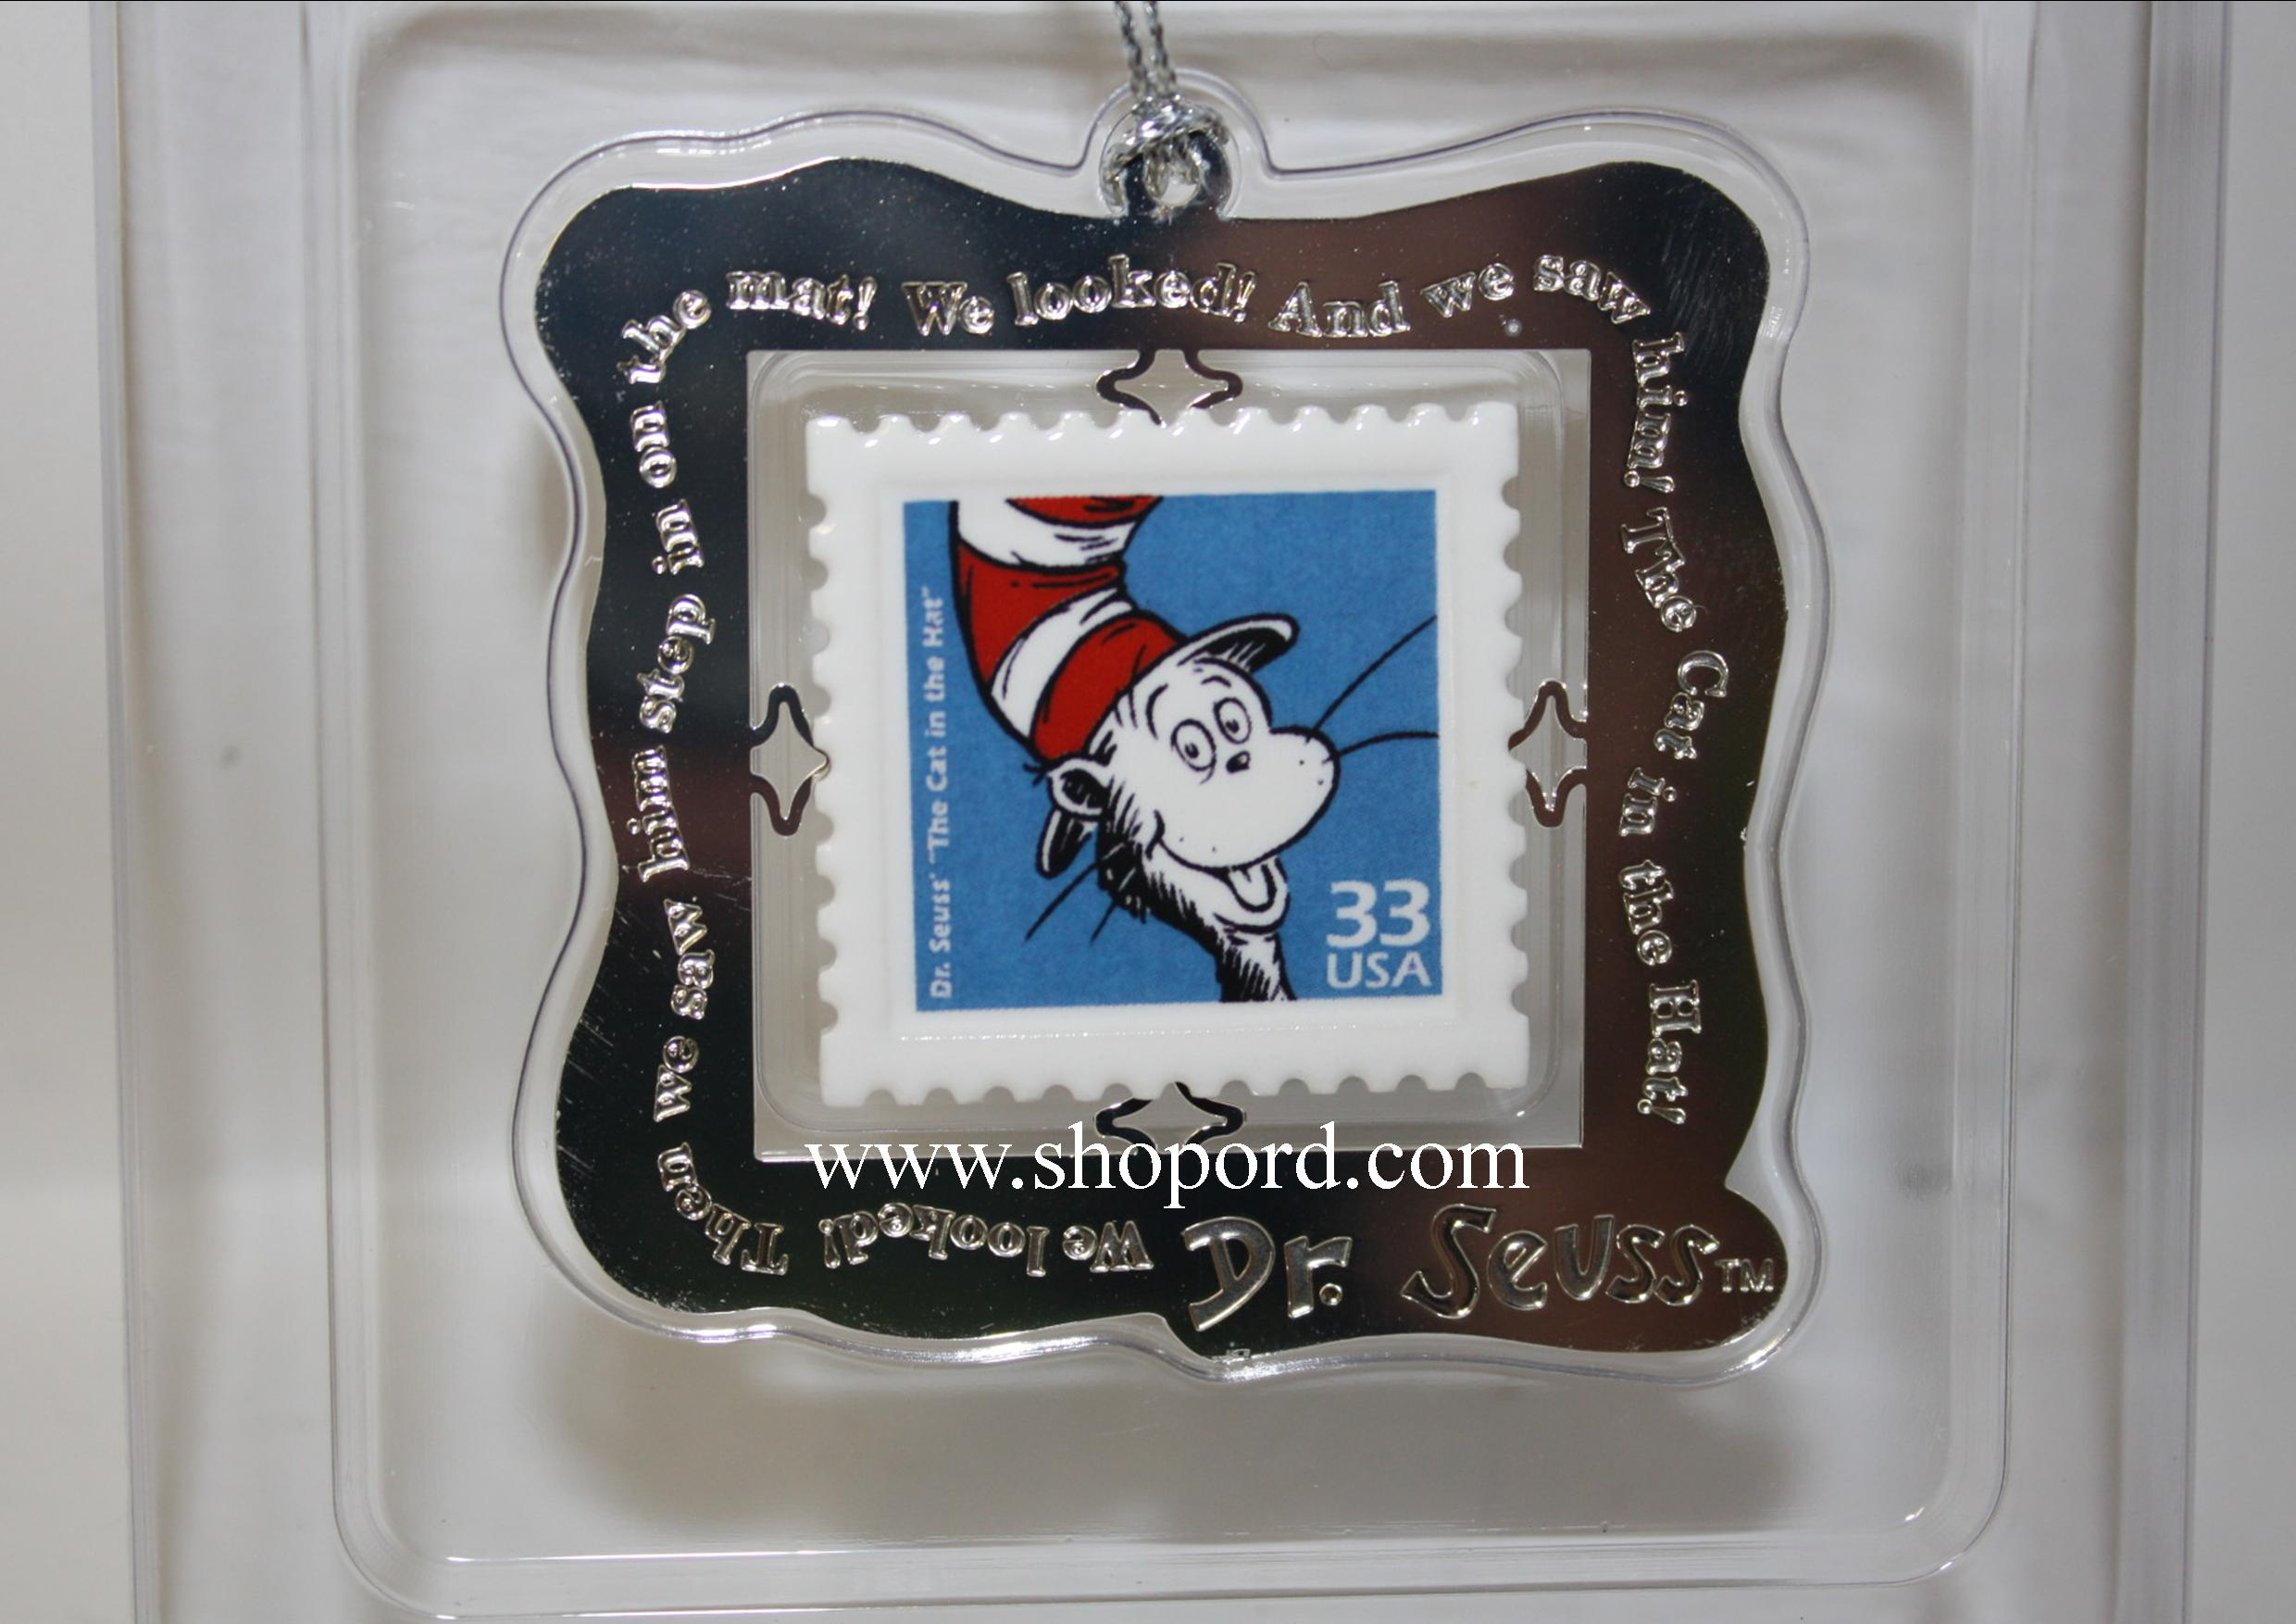 Hallmark 1999 The Cat In The Hat Stamp Ornament Dr Seuss Celebrate The Century Collection QXI8579